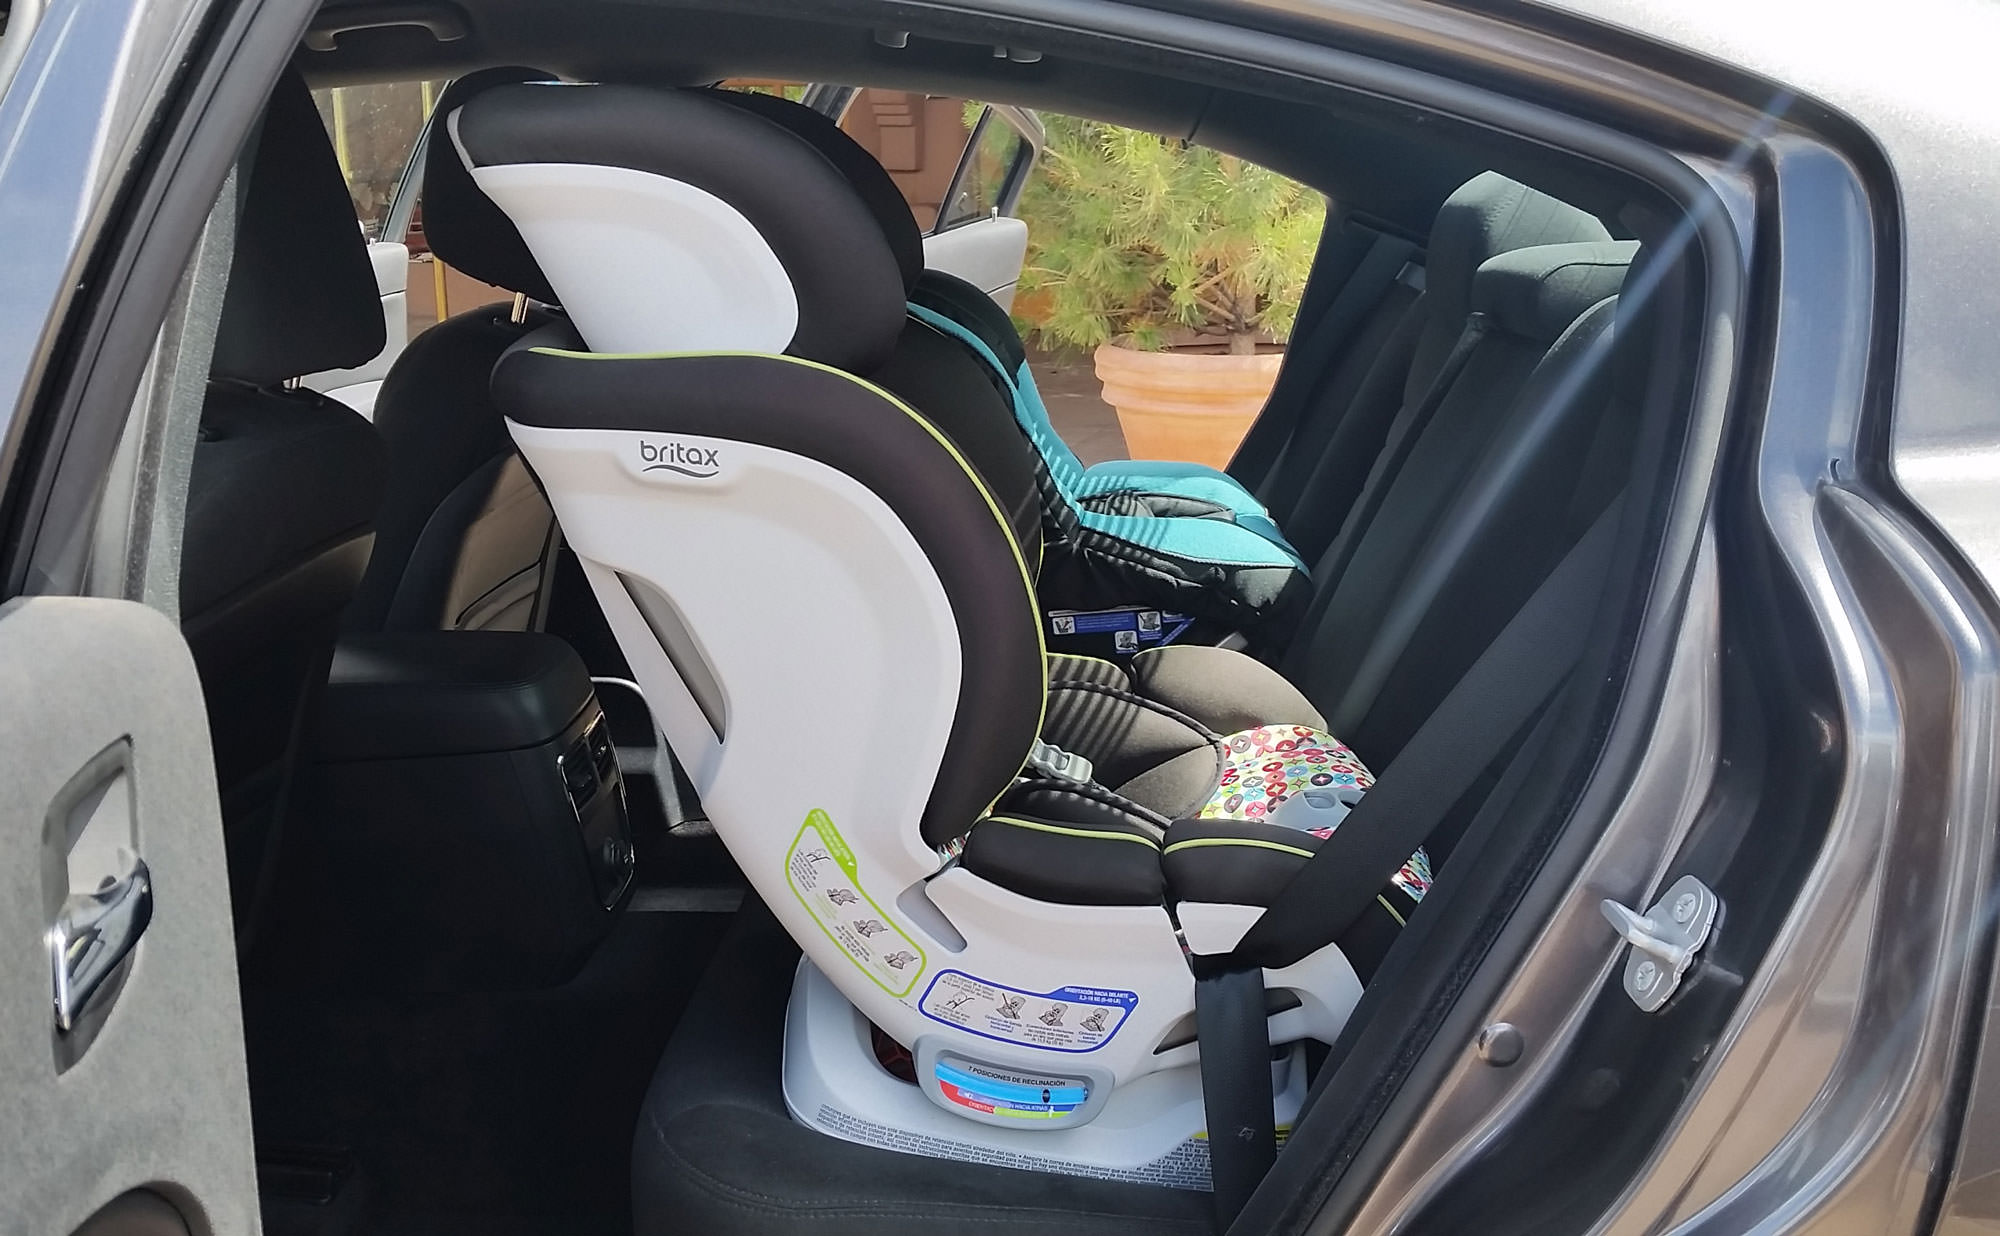 Why Do Car Seats Have Expiration Dates?